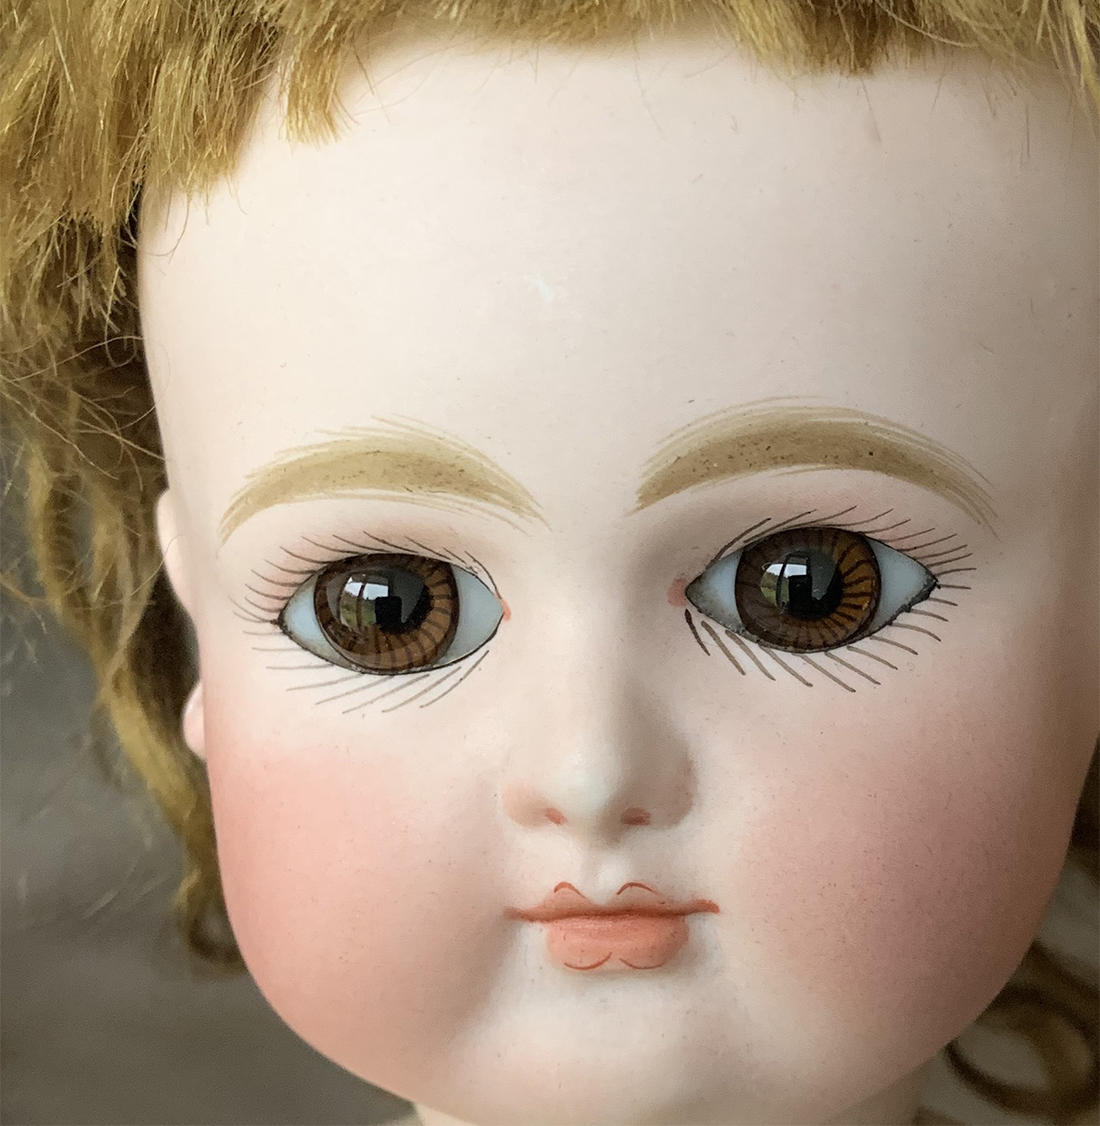 PETIT and DUMOUTIER doll